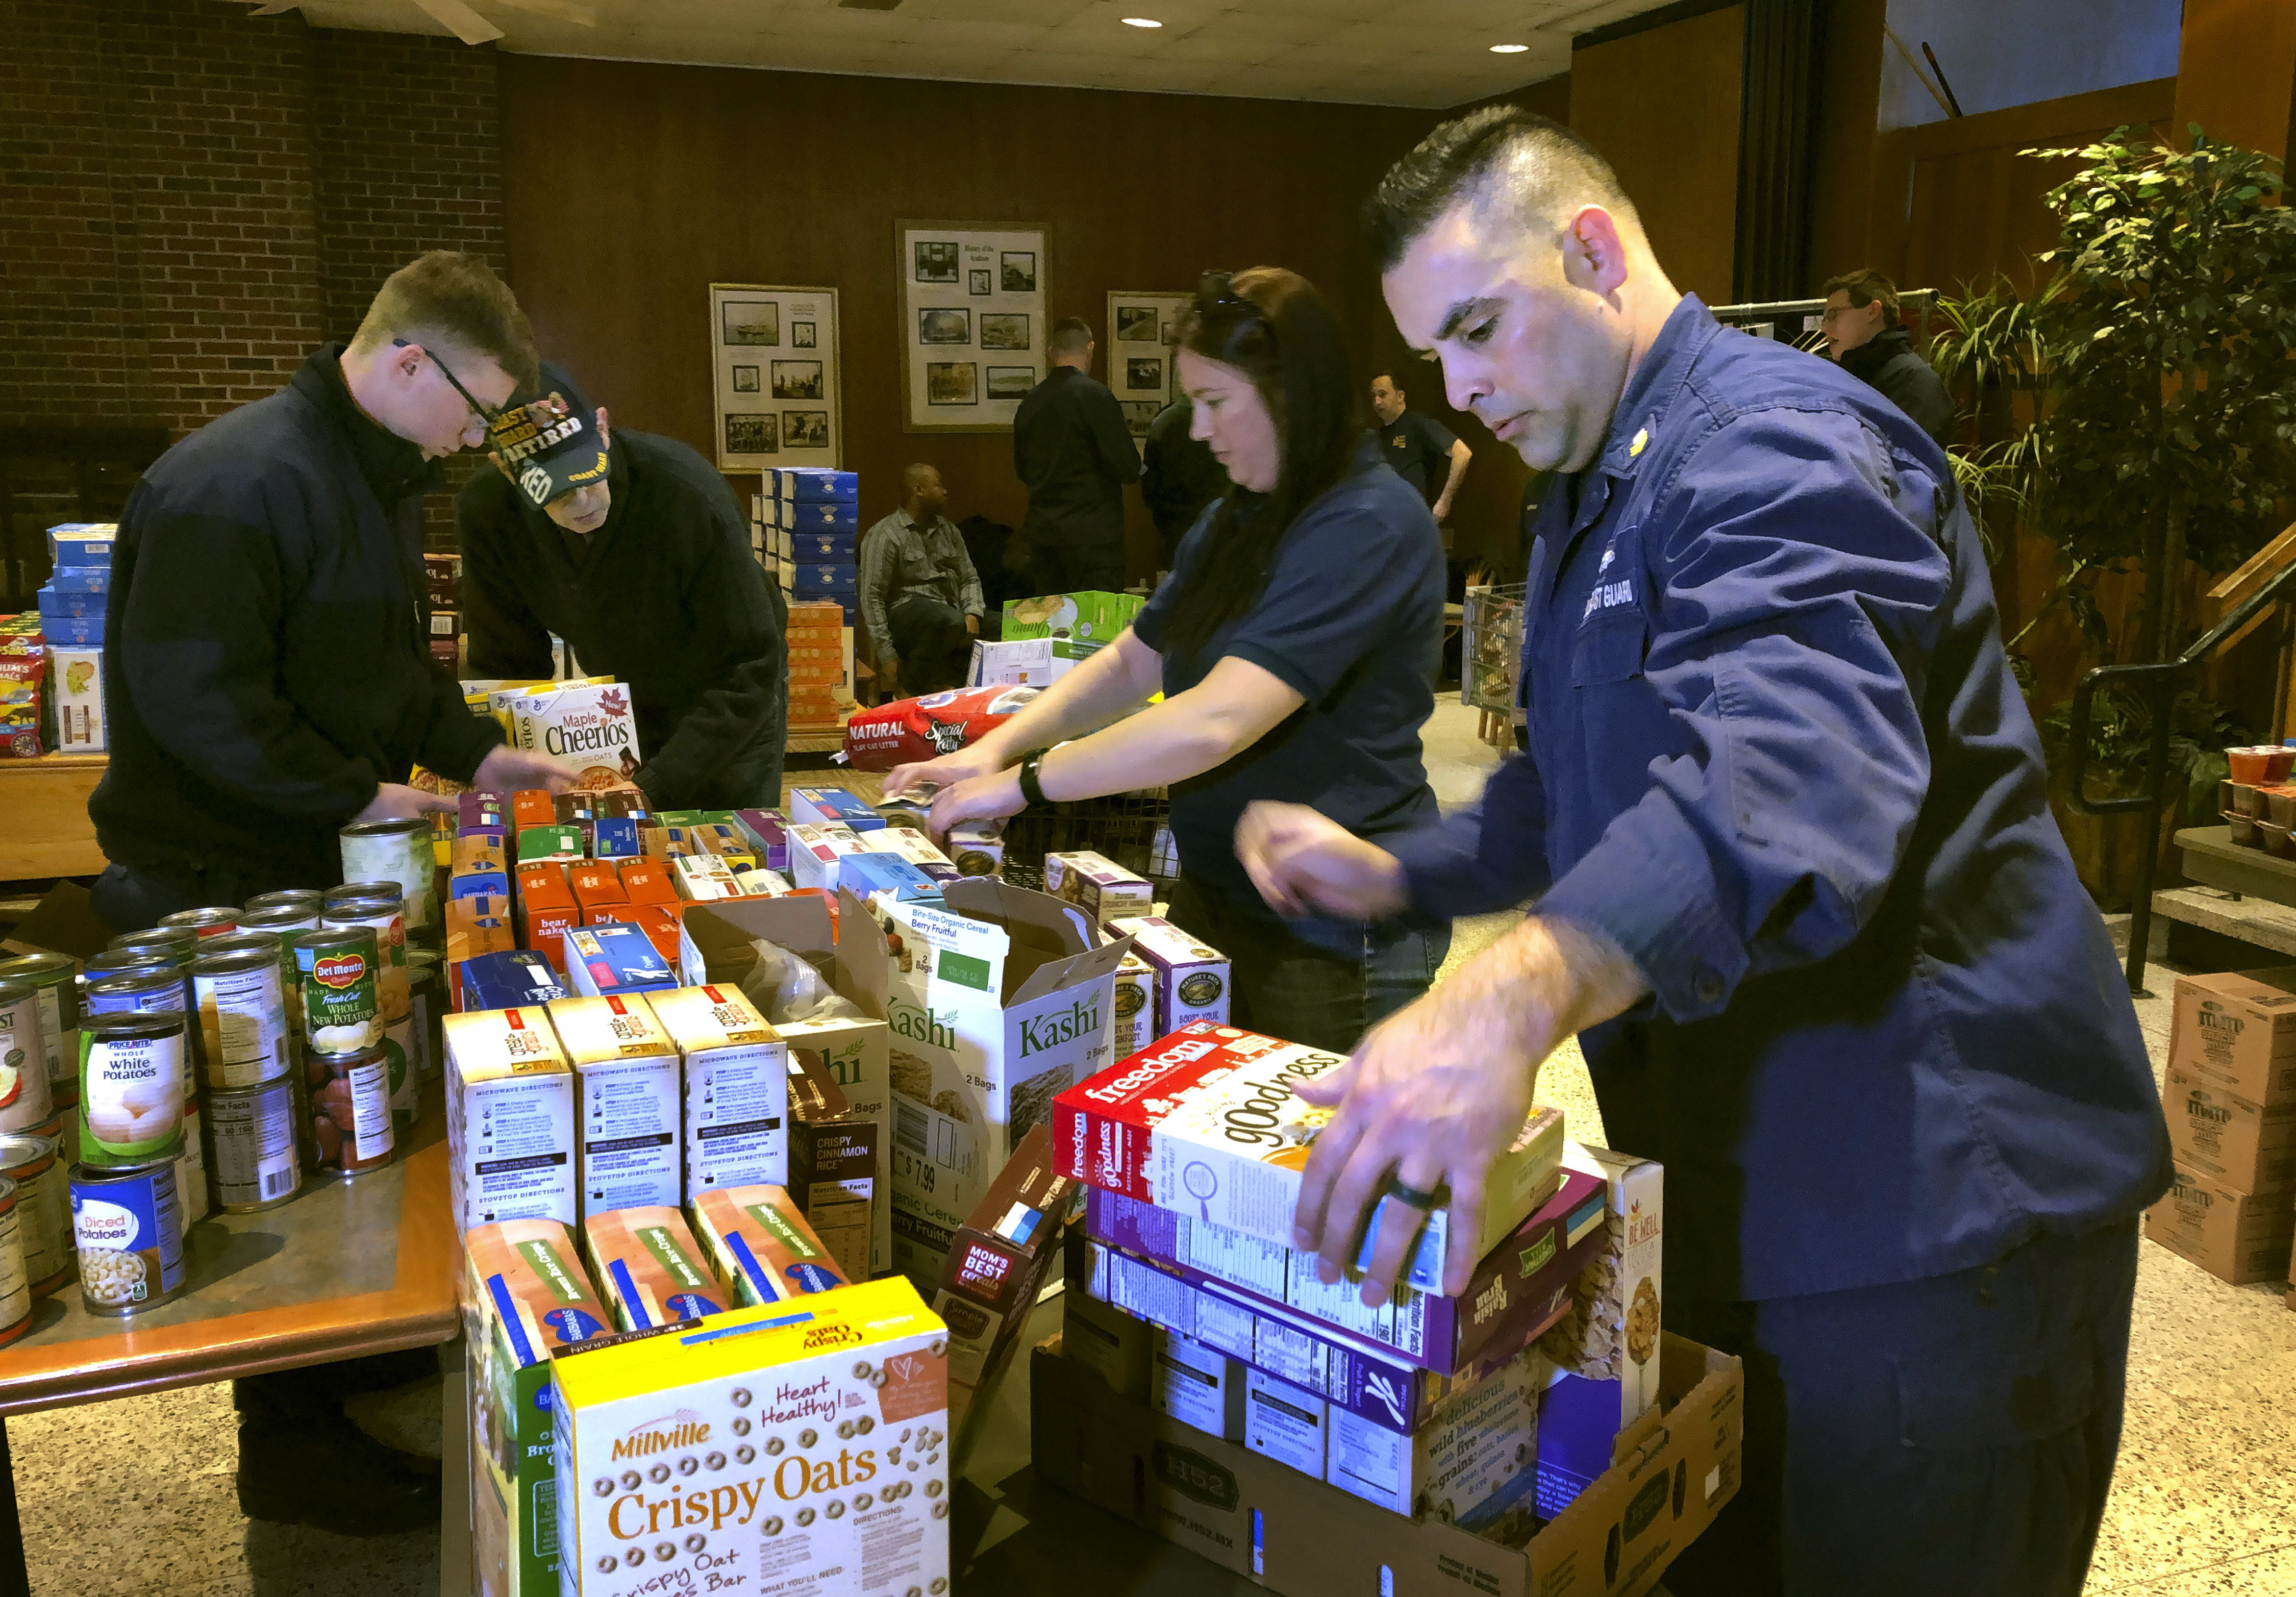 U.S. Coast Guard Culinary Specialist Jerry Wright, right, and Petty Officer 2nd Class Lauren Laughlin, second from right, stack boxes of donated cereal at a pop-up food pantry created at the Coast Guard Academy in New London, Conn., on Jan. 17, 2019.